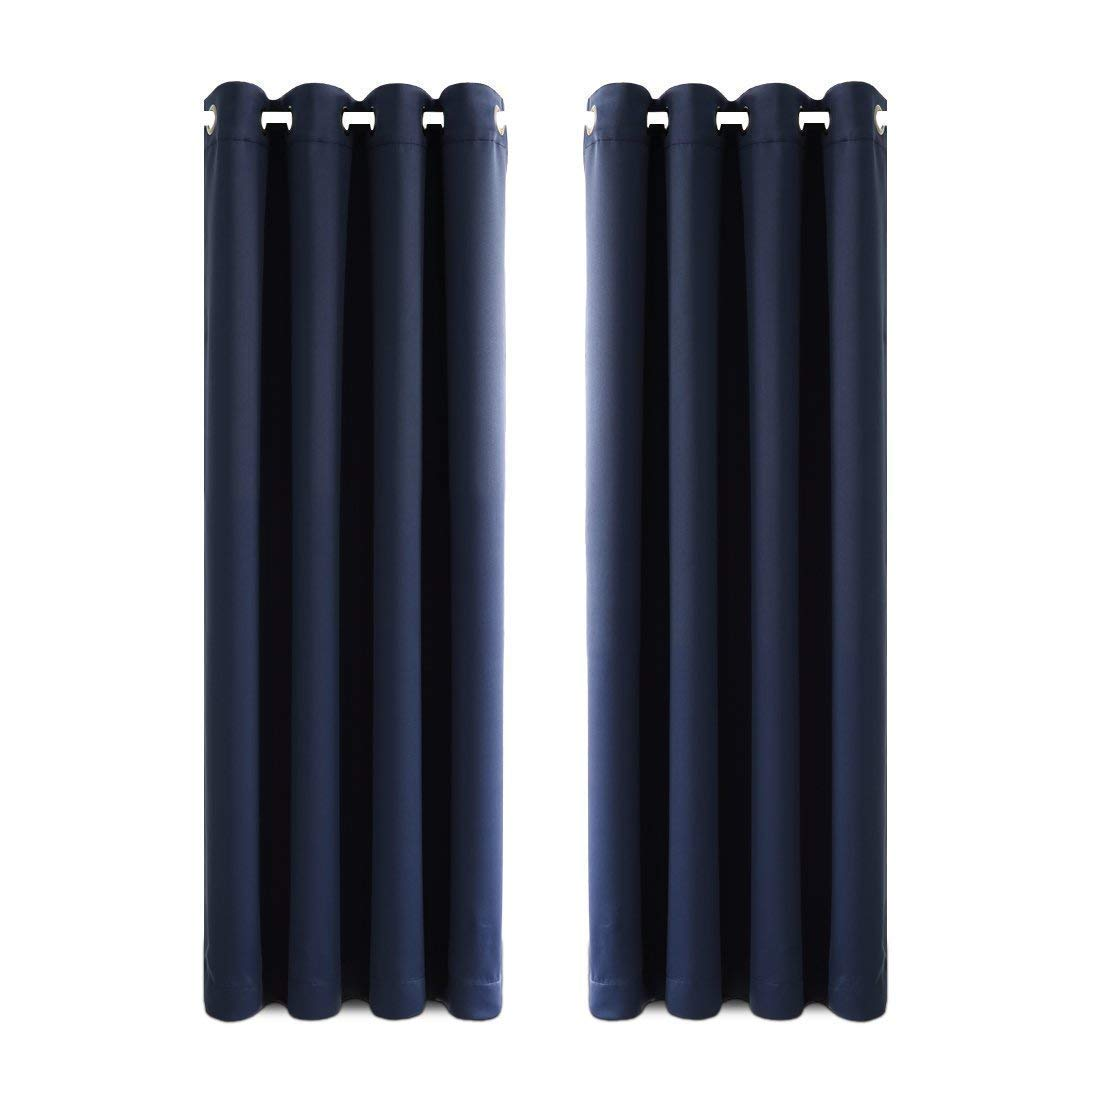 Balichun 99% Blackout 2 Panels Curtains Thermal Insulated Grommets Drapes for Bedroom 52 by 63 Inch Black FBA_B01HXC3VNU